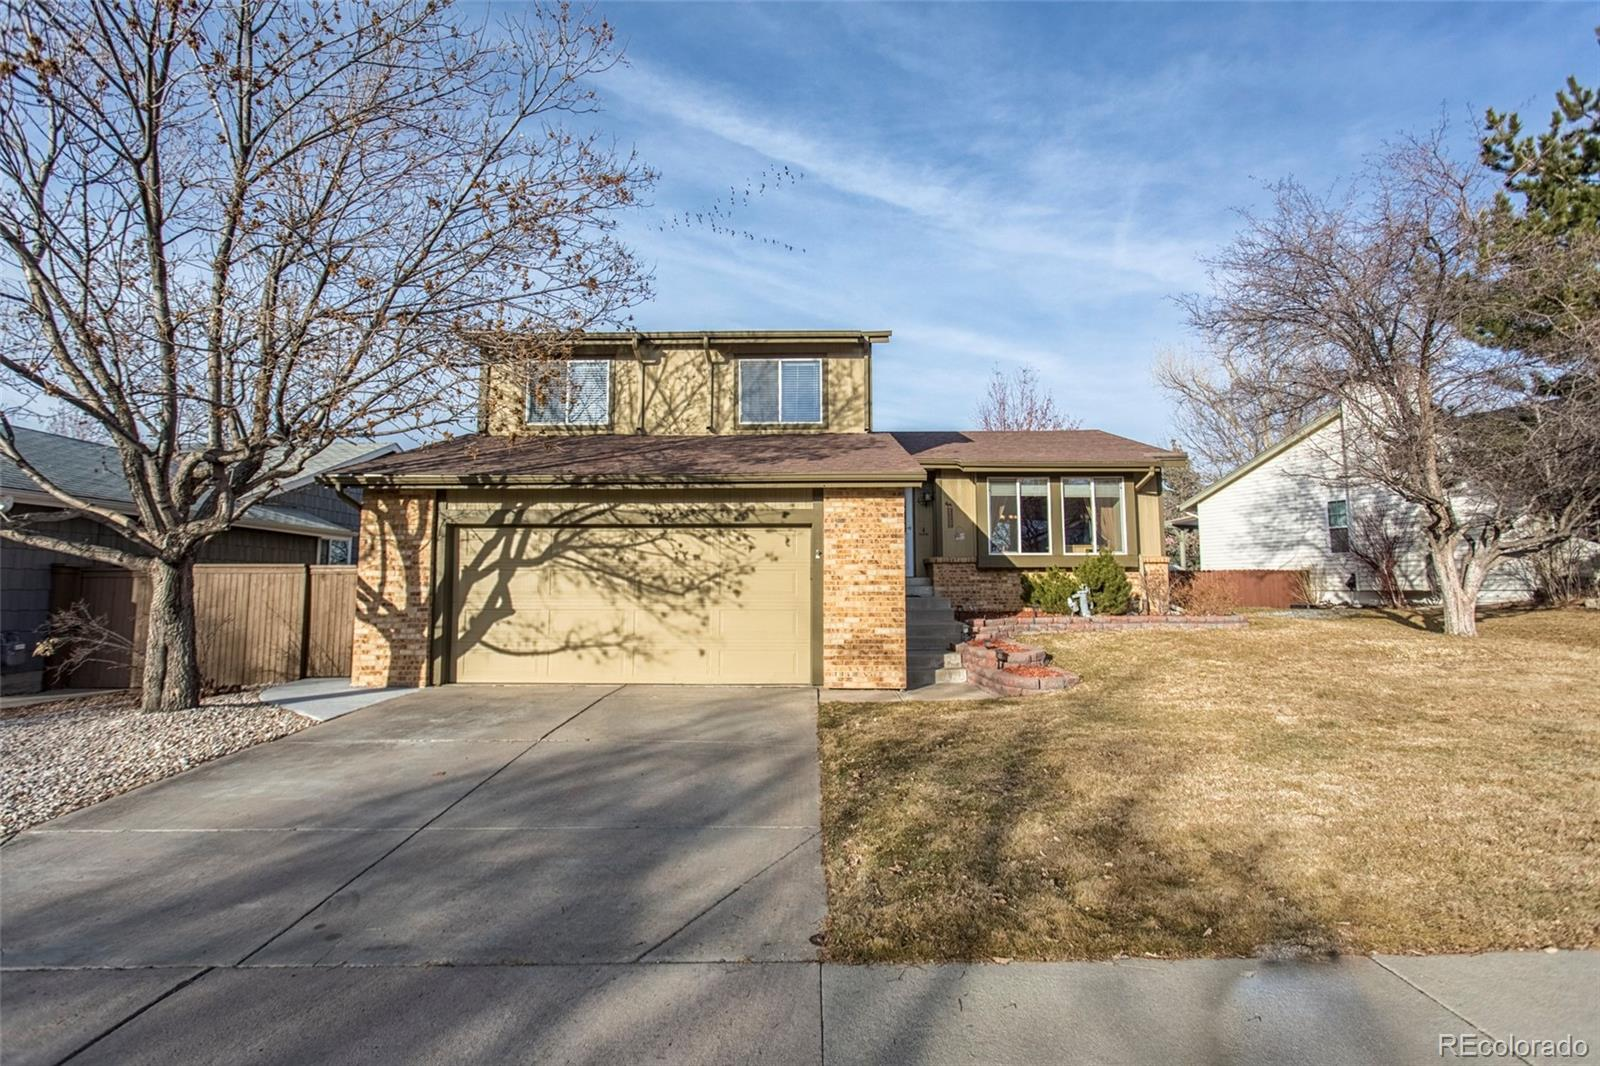 MLS# 8627962 - 3 - 431 Snowy Owl Place, Highlands Ranch, CO 80126